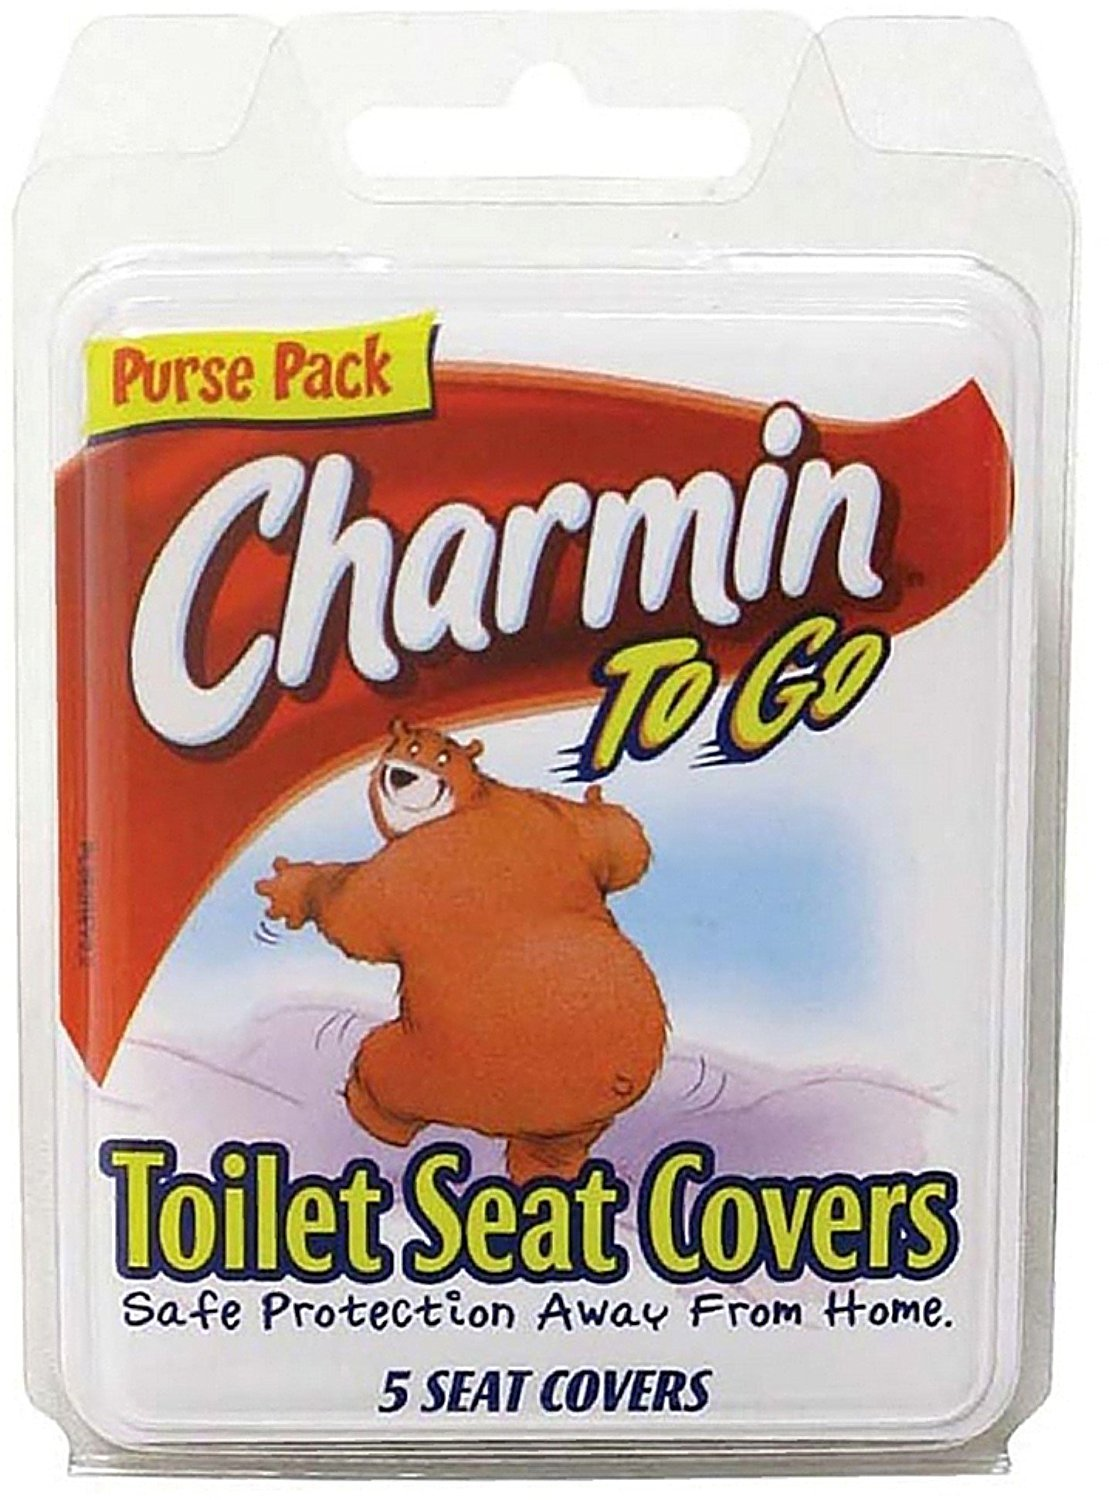 Outstanding Charmin To Go Toilet Seat Covers 5 Ea Pack Of 2 Onthecornerstone Fun Painted Chair Ideas Images Onthecornerstoneorg